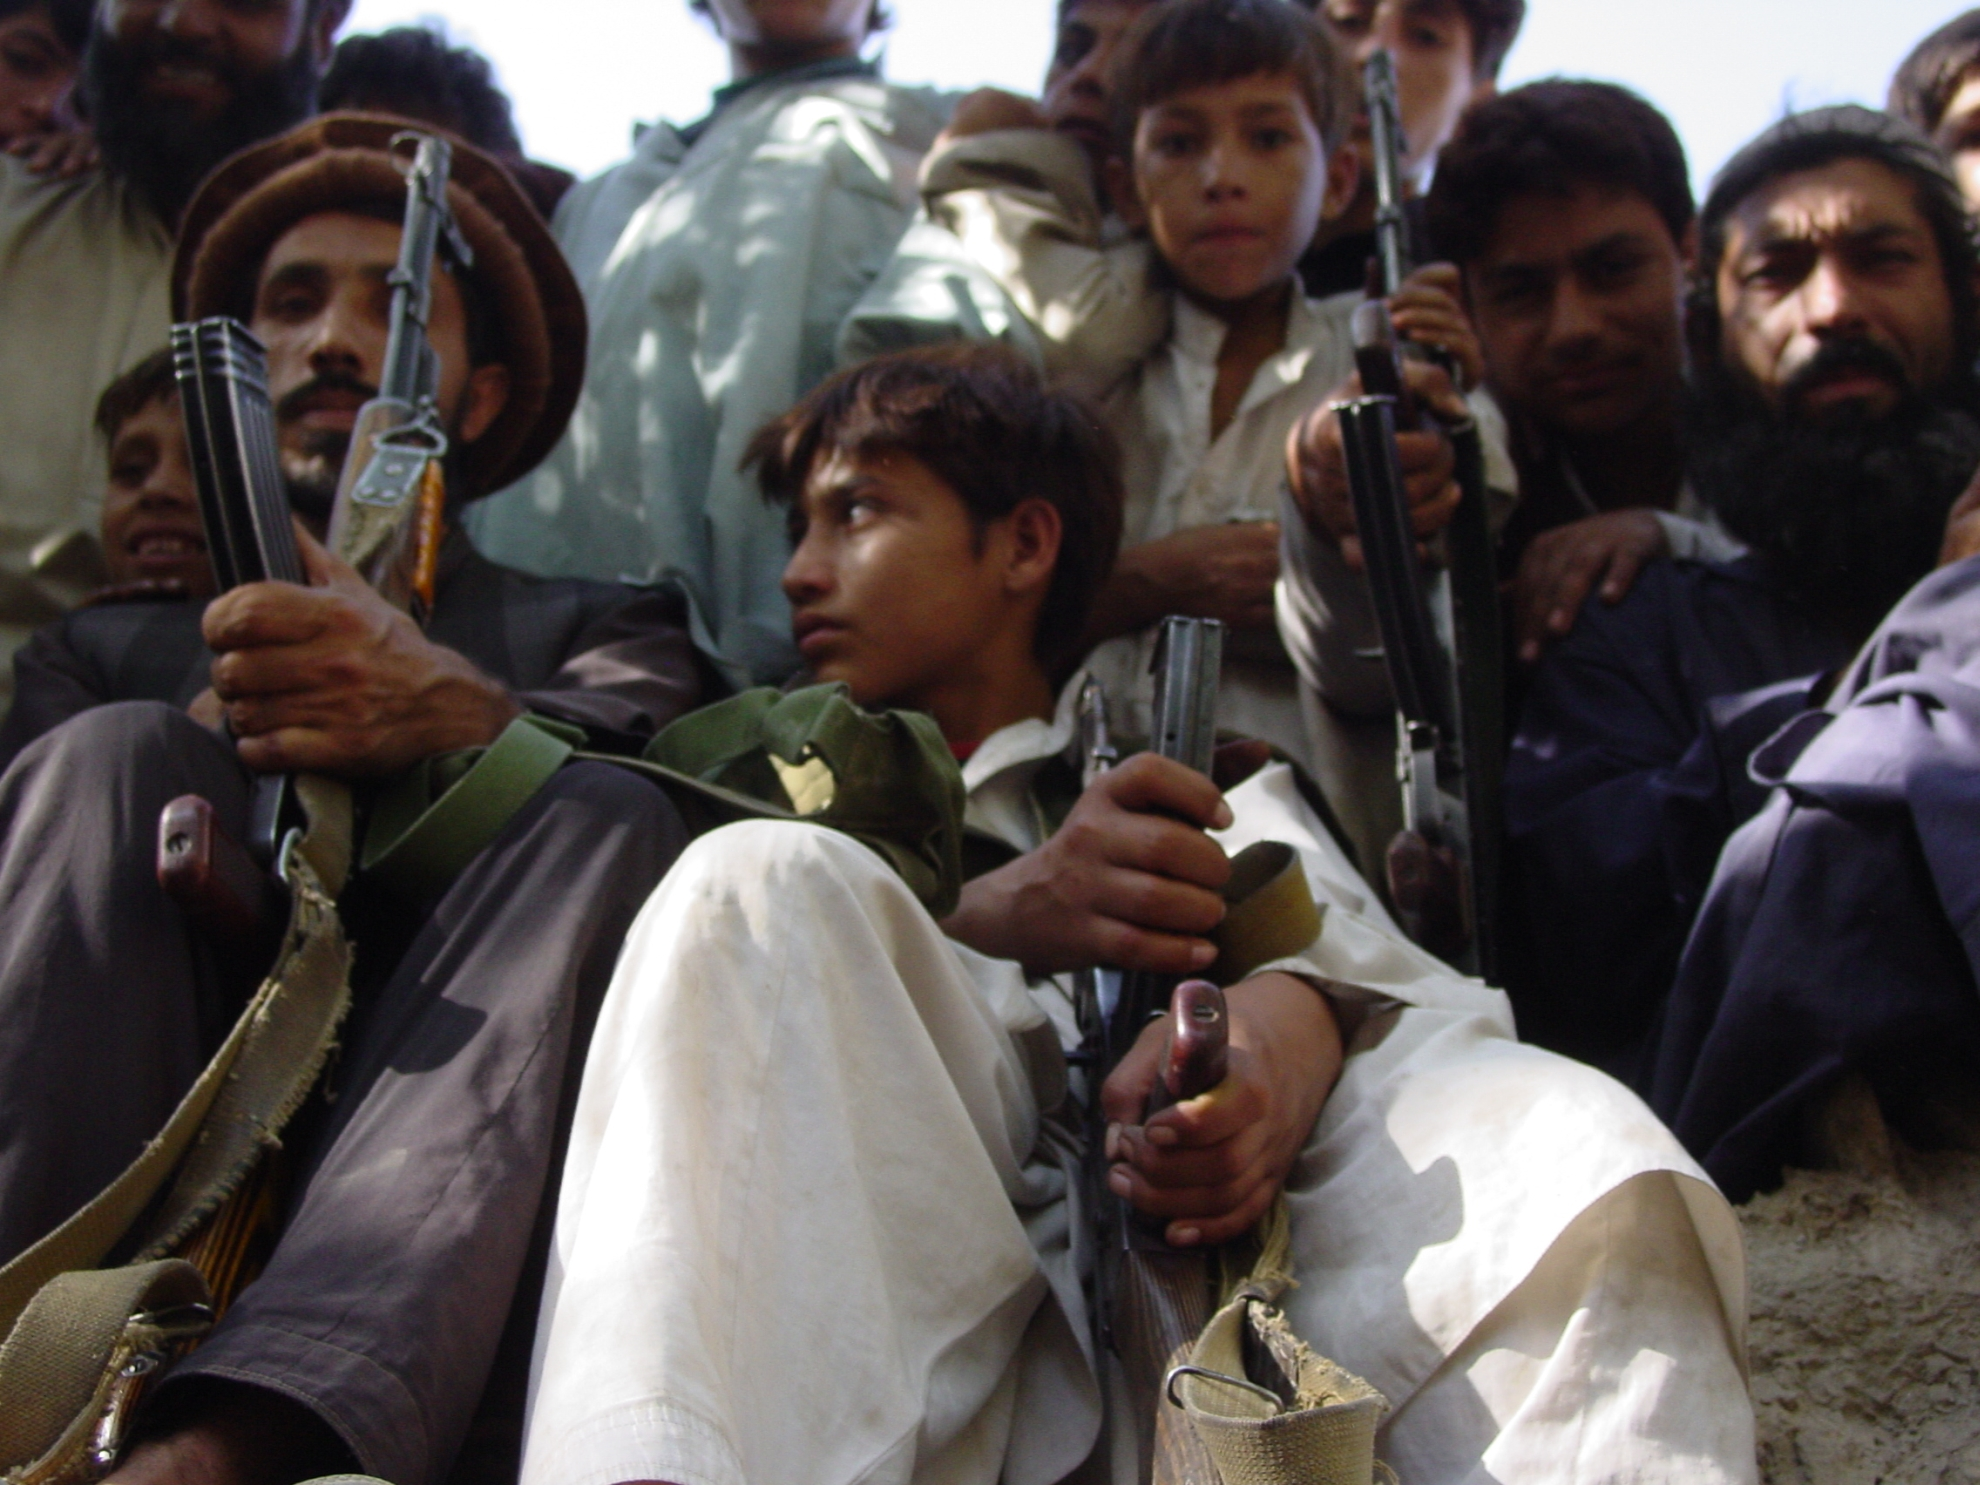 In the mountain regions of Afghanistan, it is common practice to bring along your AK-47 to a party. The gun, whish is also known as a kalashnikov, is very popular as it is easy to repair. Photo: Jens Kjær Jensen, 2003